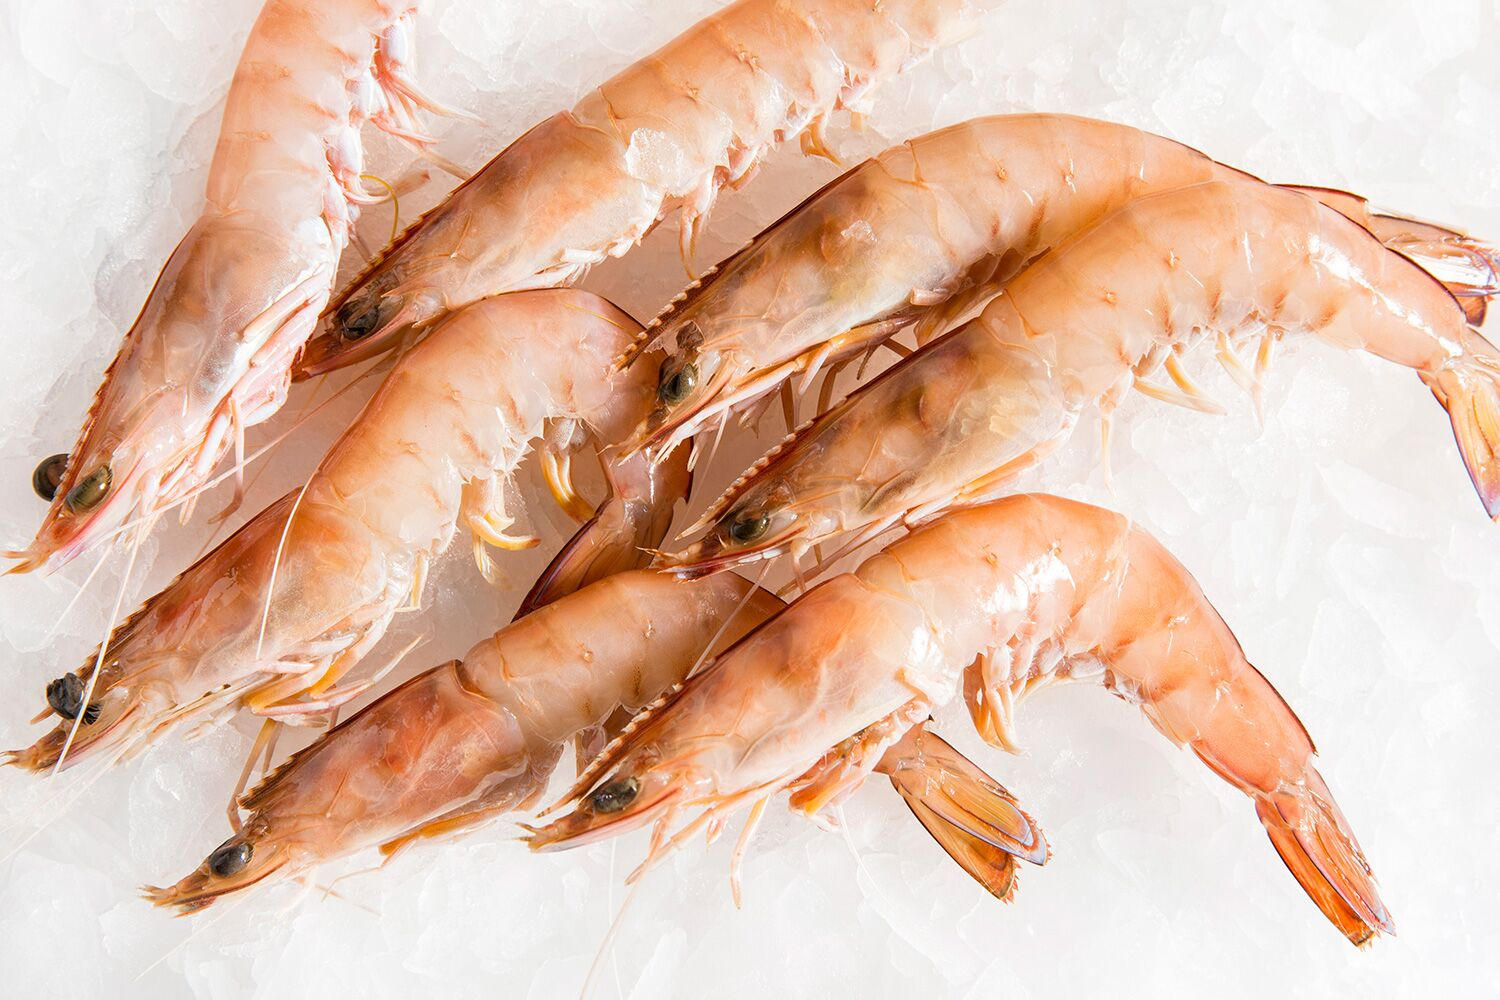 Prawn Market Report, Global Industry Overview, Growth, Trends, Opportunities and Forecast 2019-2024